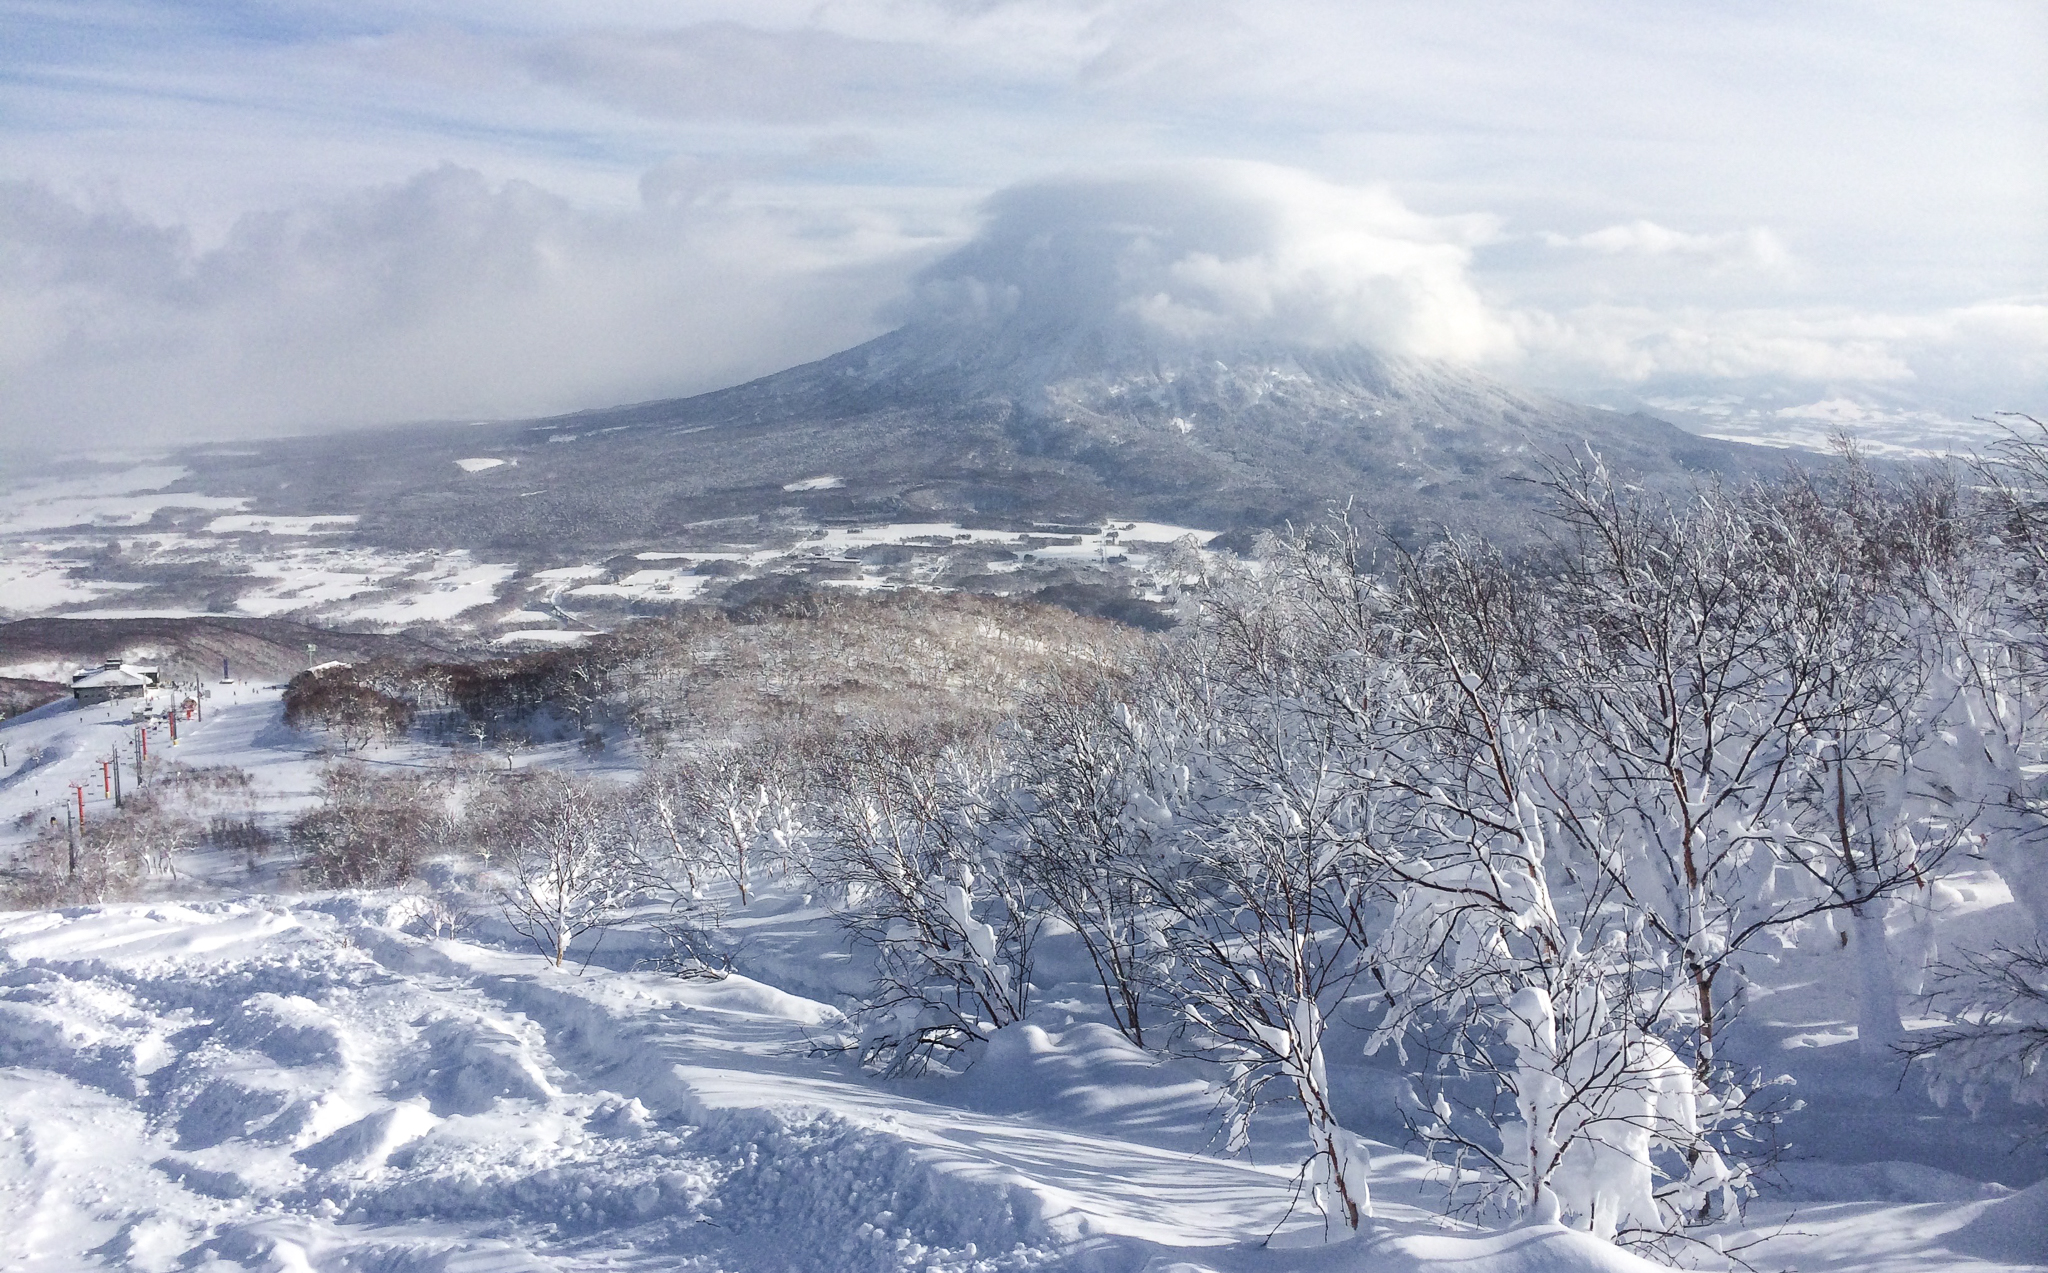 Winter Holiday in Niseko feat Mt Yotei